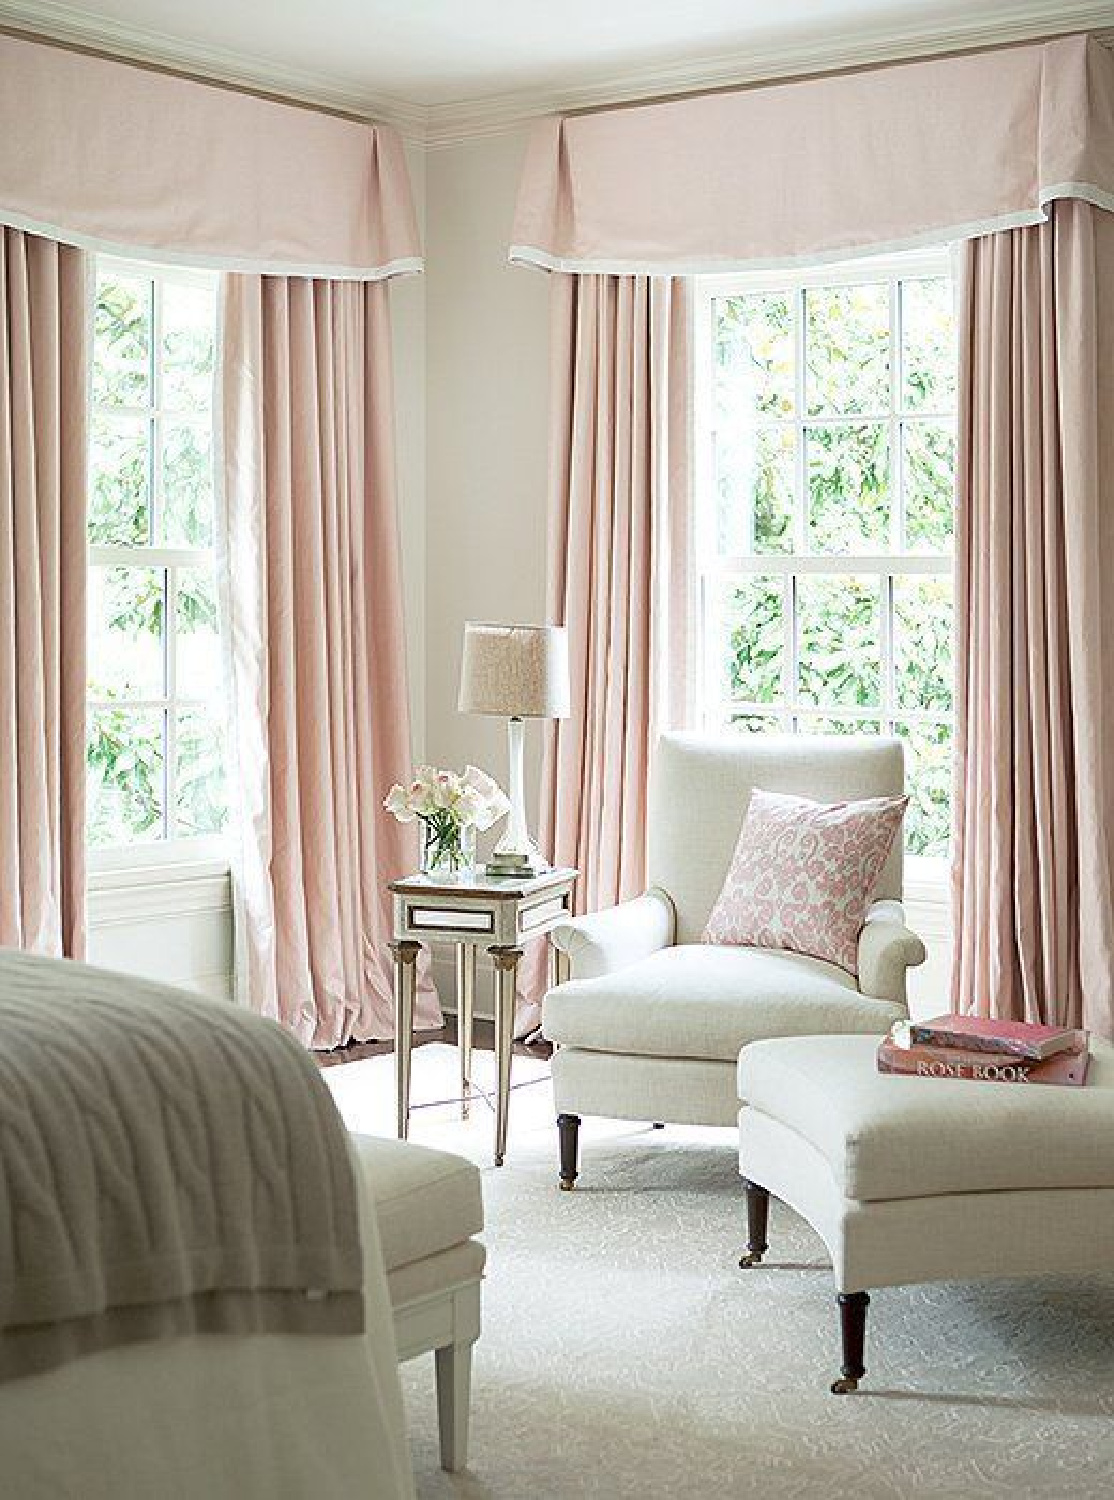 Intimate White (Sherwin Williams) pale pink paint color in Suzanne Kasler designed bedroom with pink curtains. #intimatewhite